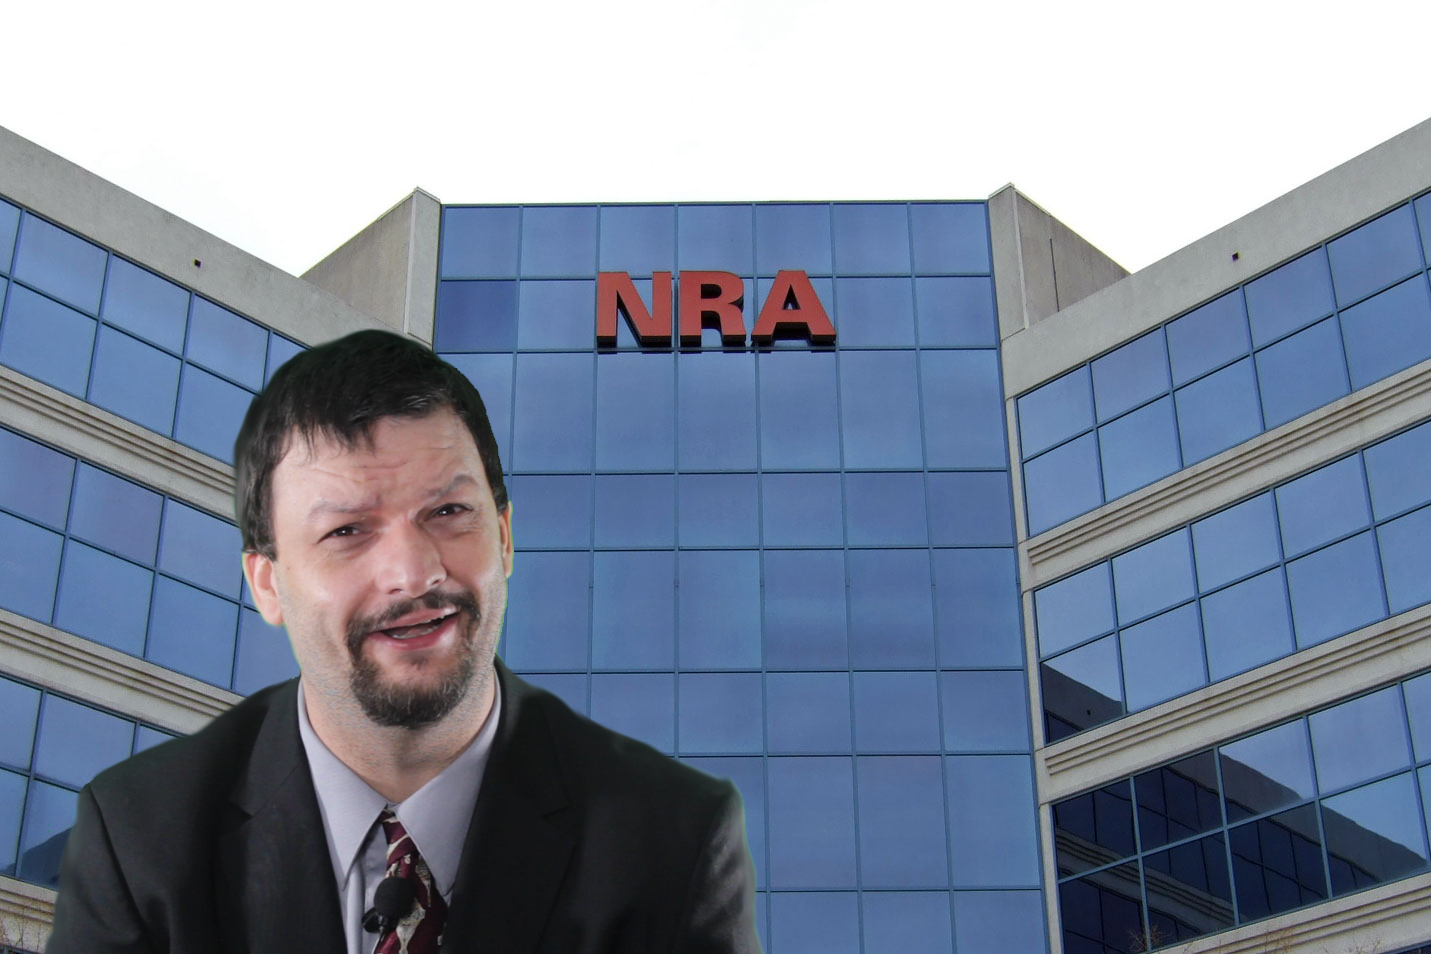 NRA Exec Just Straight Up Doesn't Give A Fuck About Your Dead Kids, America